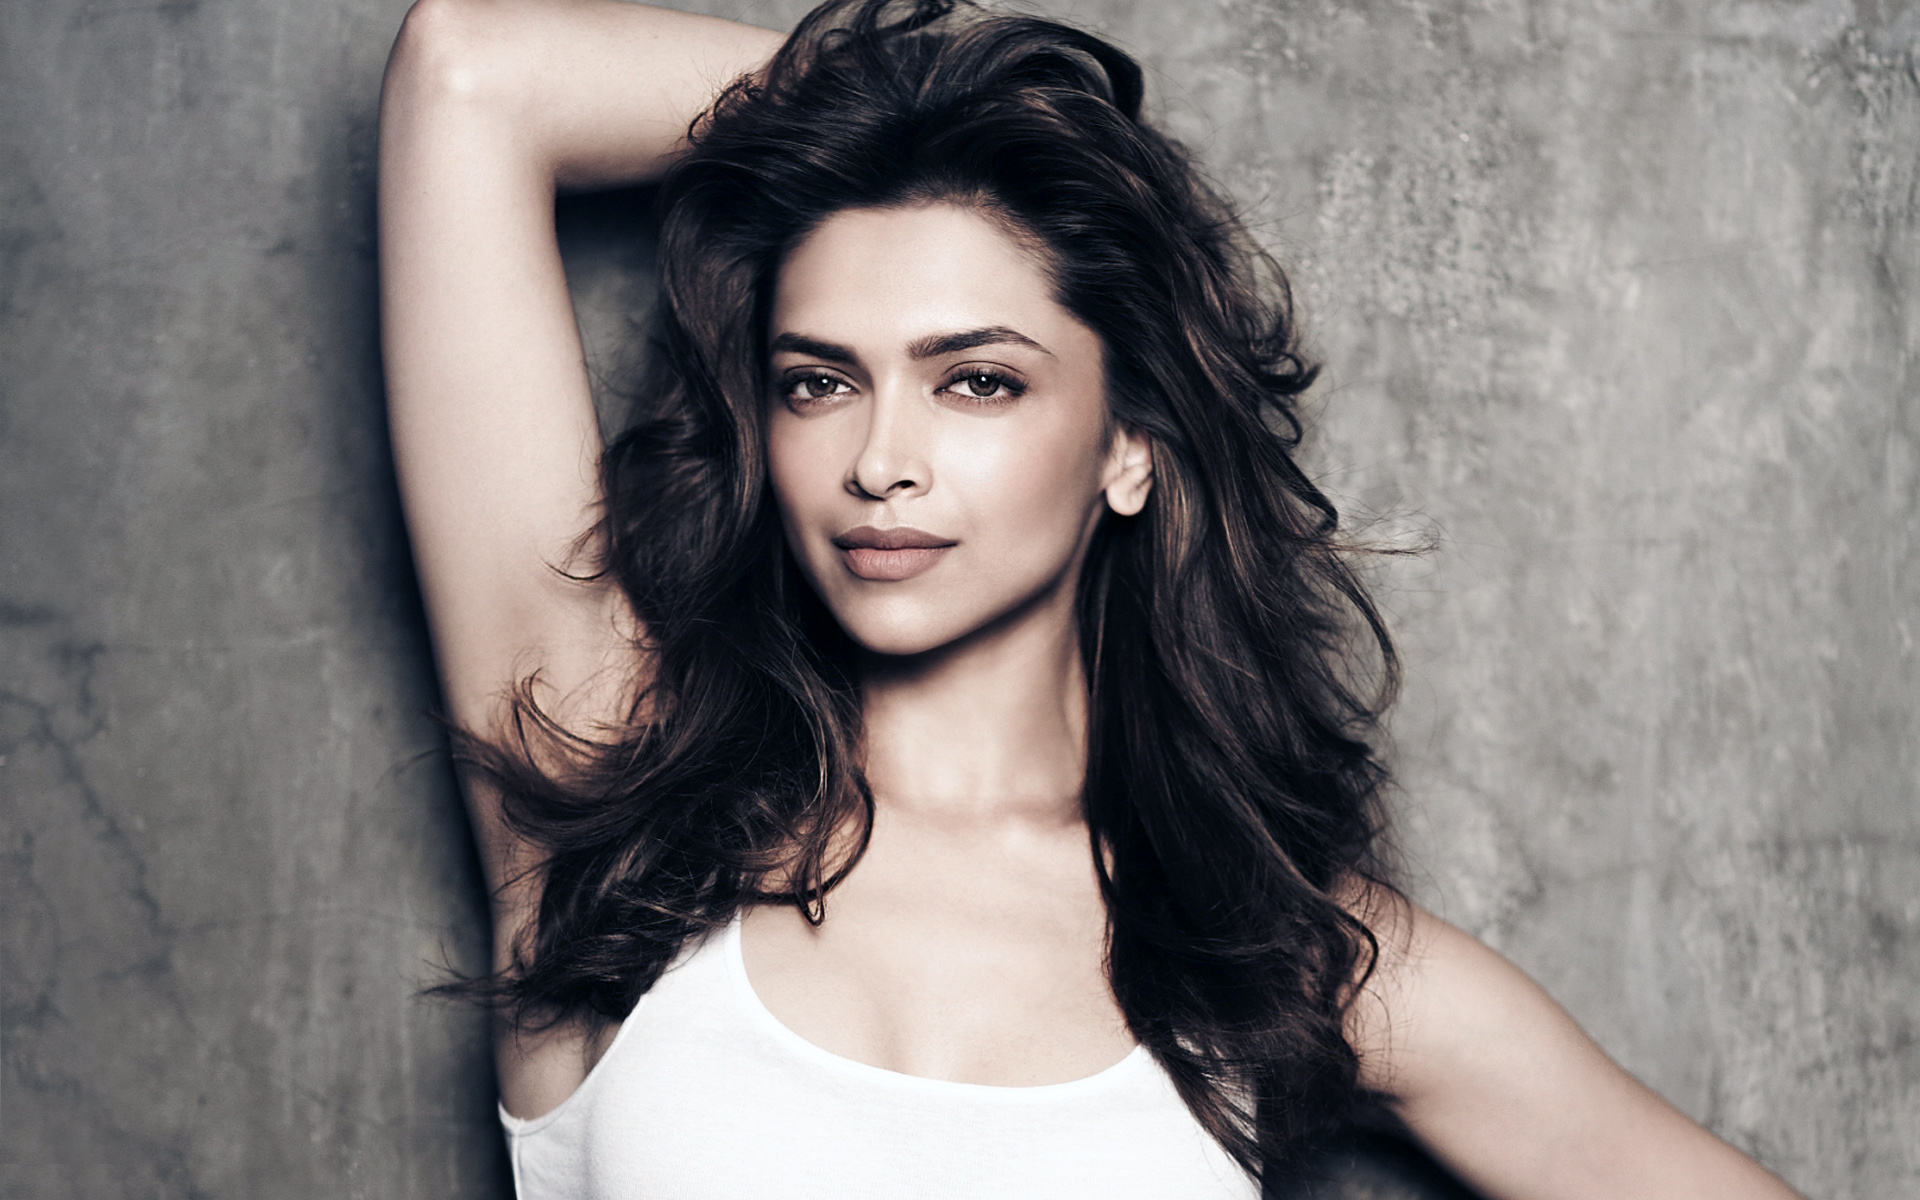 What's next on cards for Deepika Padukone? Check out here